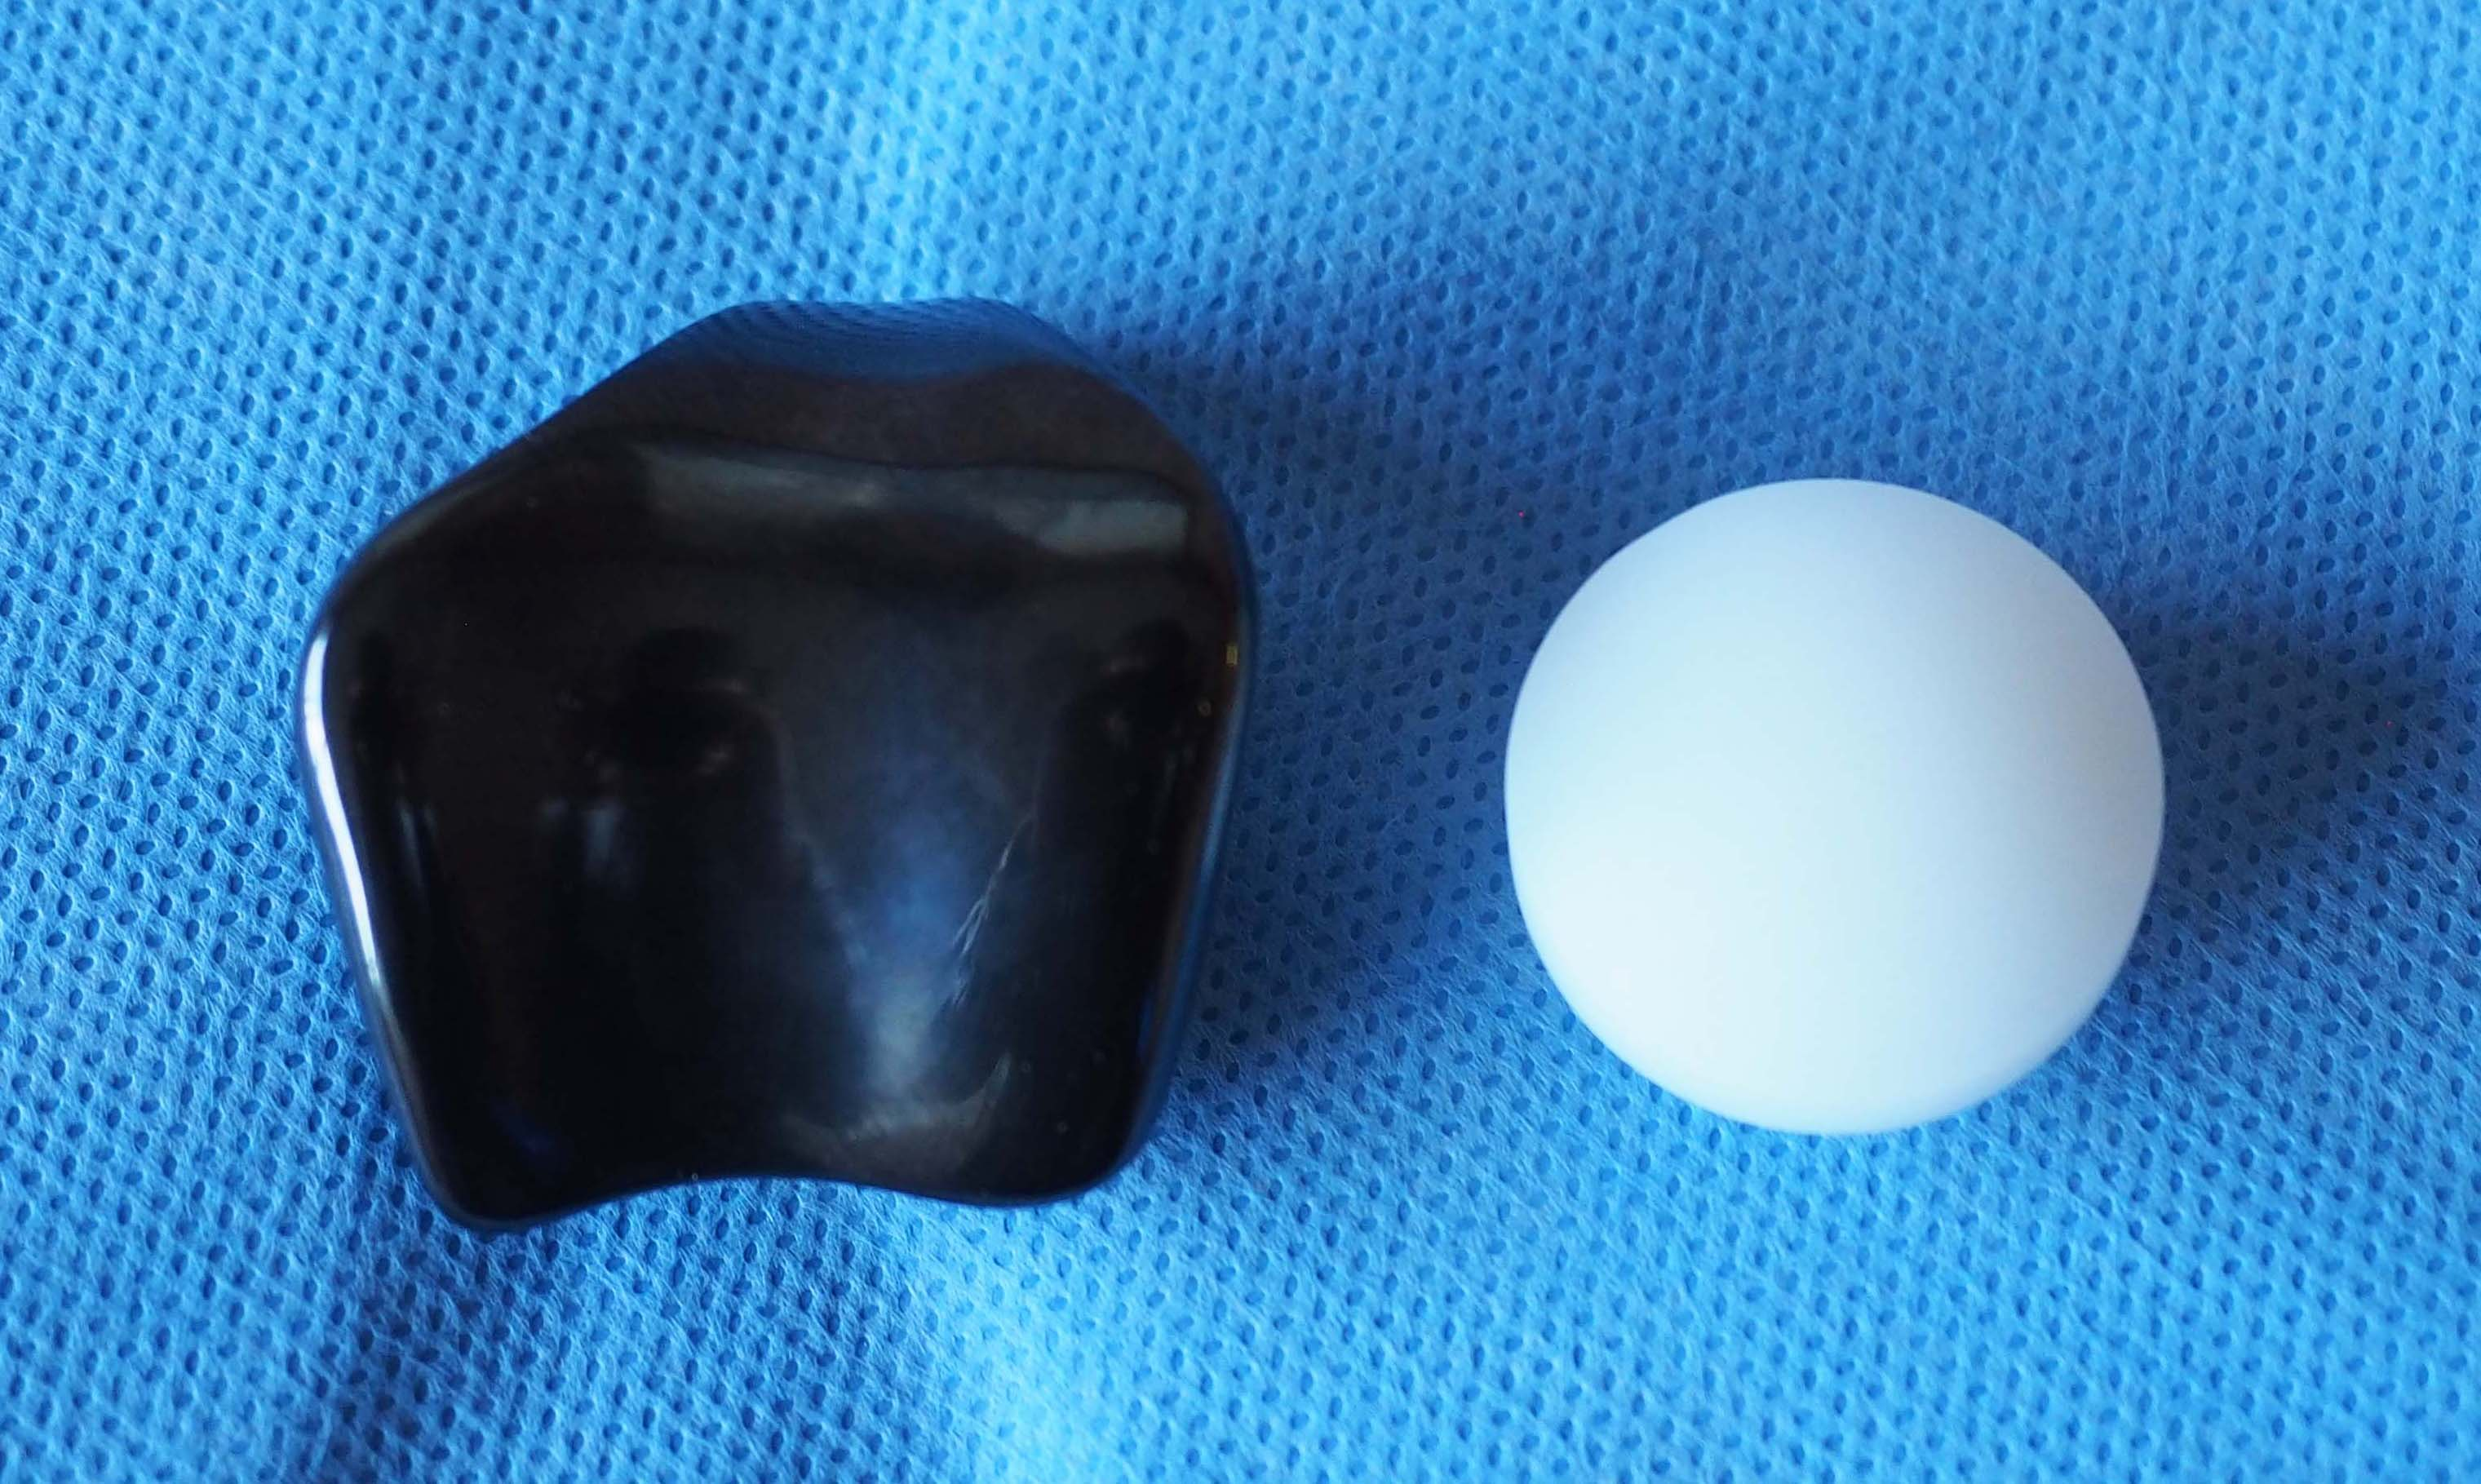 Photo of patellofemoral replacement implants